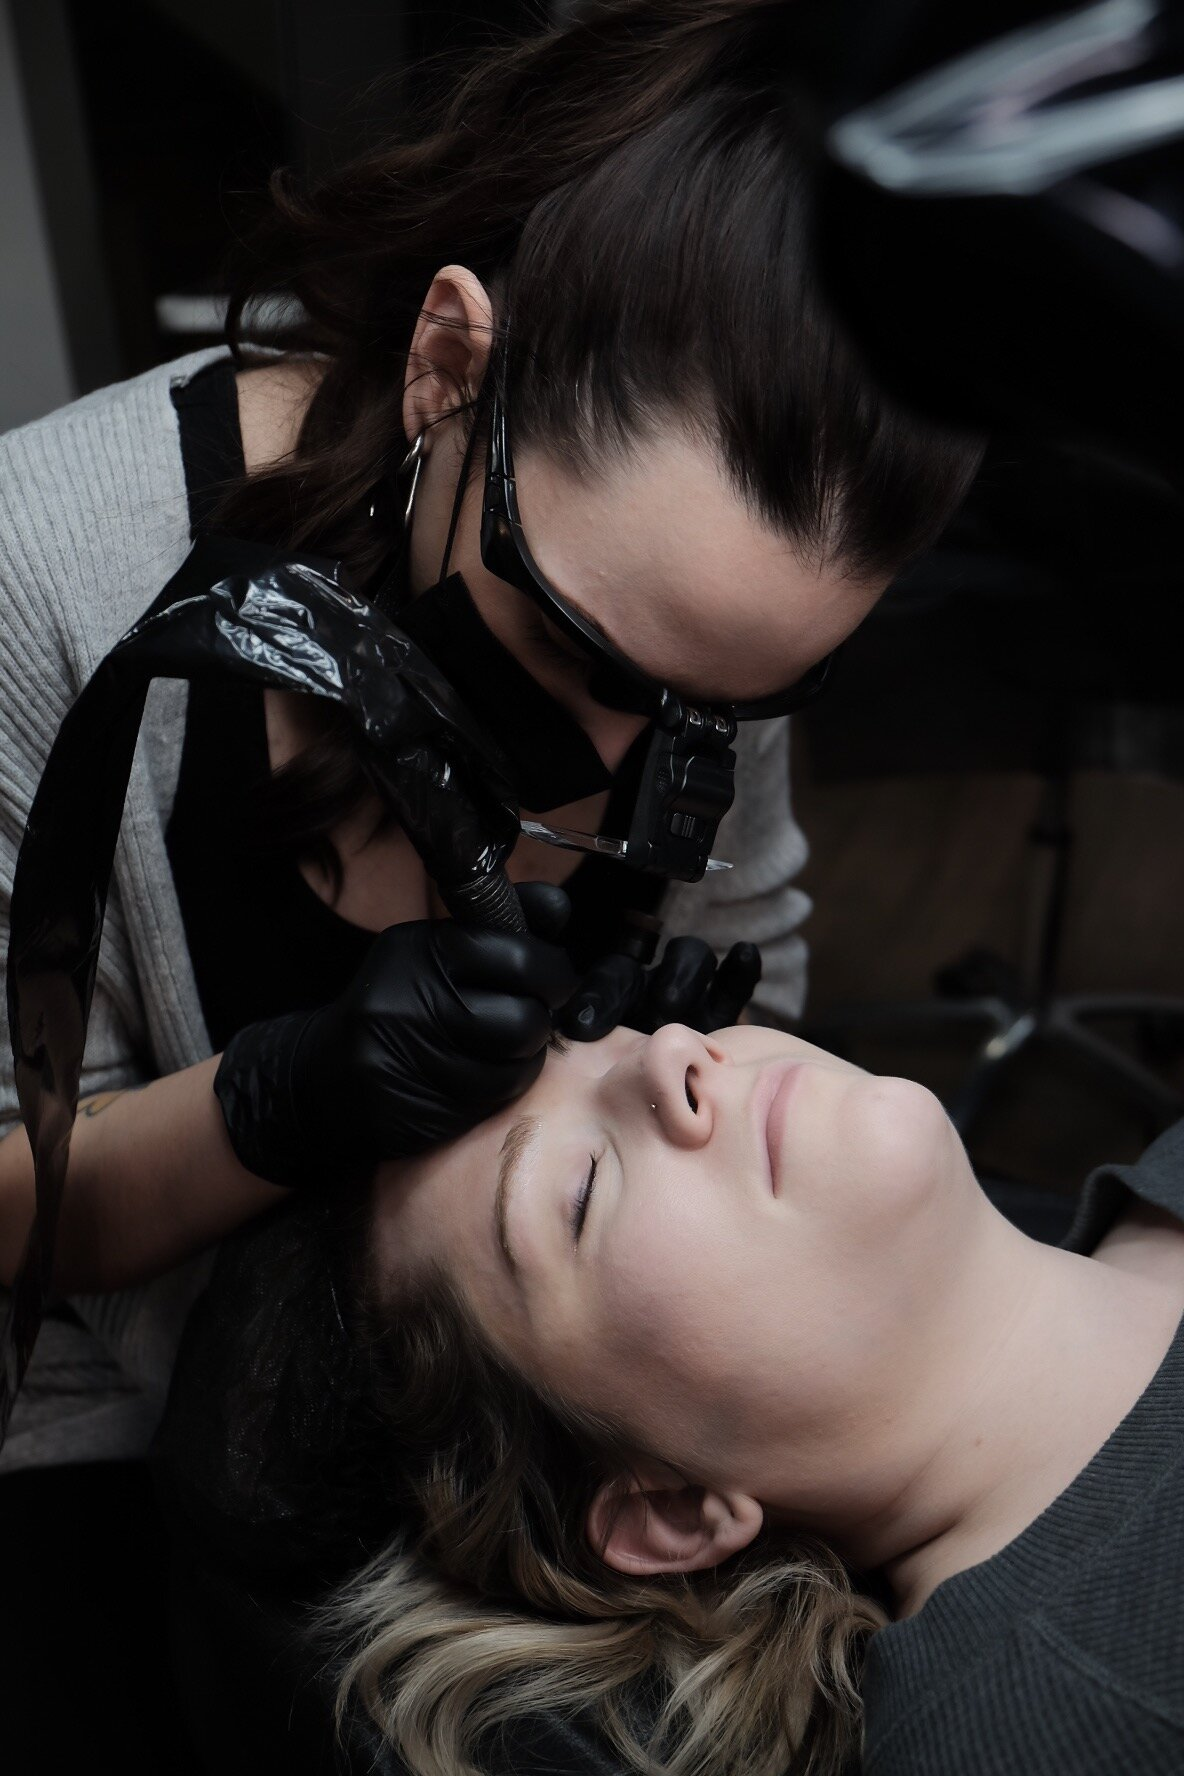 COURTNEY - I will go ahead and start off by saying this has been the best advanced course I have ever taken. I have been an esthetician for 10 years and have taken several continuing education courses and this has surpassed all of my expectations. I started microblading 2017 and have been on a journey to transfer completely over to the machine technique. It is a very competitive industry and people are very reluctant to share their experience, strength and technique and when they do they overbook their class, and you leave more confused than ever. Hoi only trains two people at a time, which just outlines the integrity she has for her work and for her students. Hoi and her fiance Lance have an incredible work ethic and a passion that bleeds through them. The attention to detail is what I appreciated the most this trip, down to the very final night. Hoi has worked so hard to craft her skillset and I am incredibly honored to be able to be a part of her journey and to experience her knowledge. This was the first training course where I didn't want to leave, not because i wasn't ready or feeling confident in my craft, but because Hoi and Lance made my visit so worthwhile that I wanted more time to connect with the humans that they are. If you are beginning or have a couple years of experience, this class is worth every penny. She has done everything she can to give you everything you need to know to succeed and then some. My favorite course, my favorite humans. I will be back! I MISS YOU GUYS!